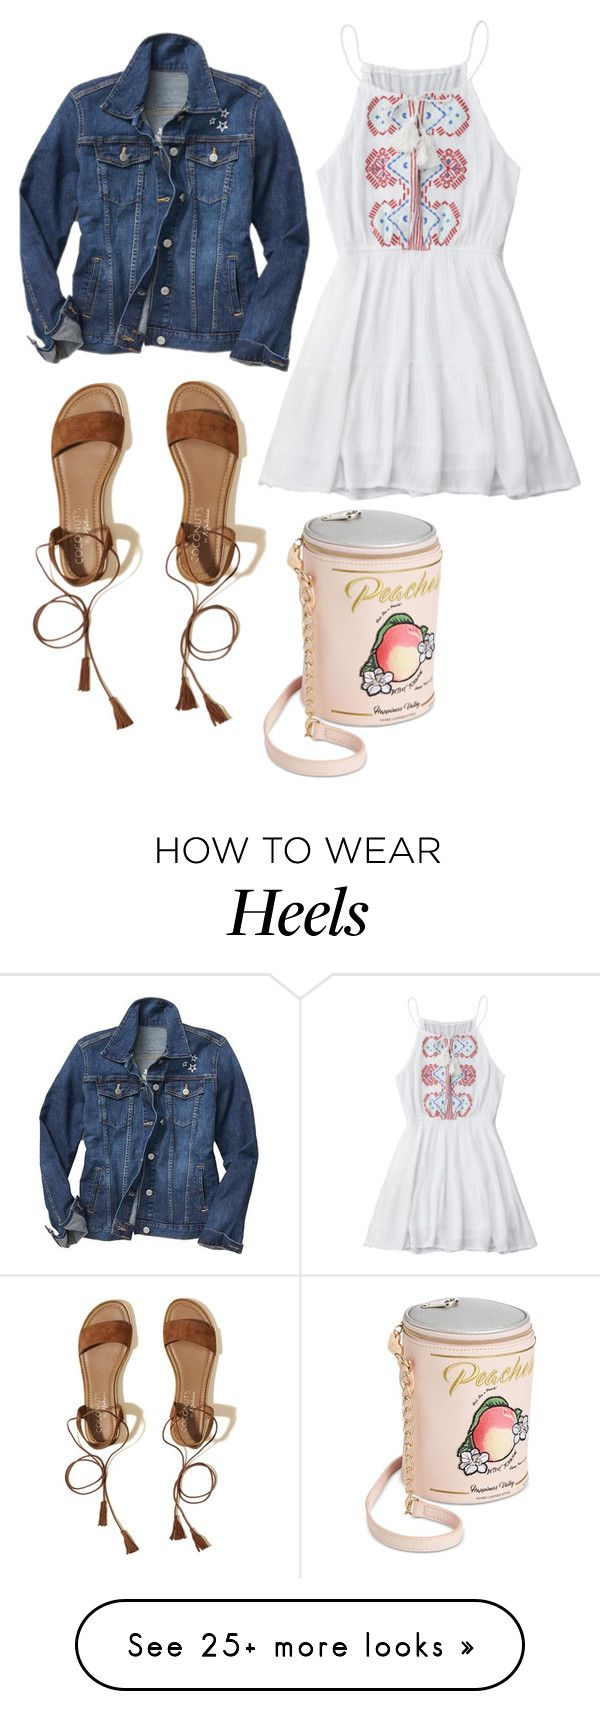 """""""Head Over Heels"""" by xxbreebreexx on Polyvore featuring Gap, Hollister Co. and Betsey Johnson"""